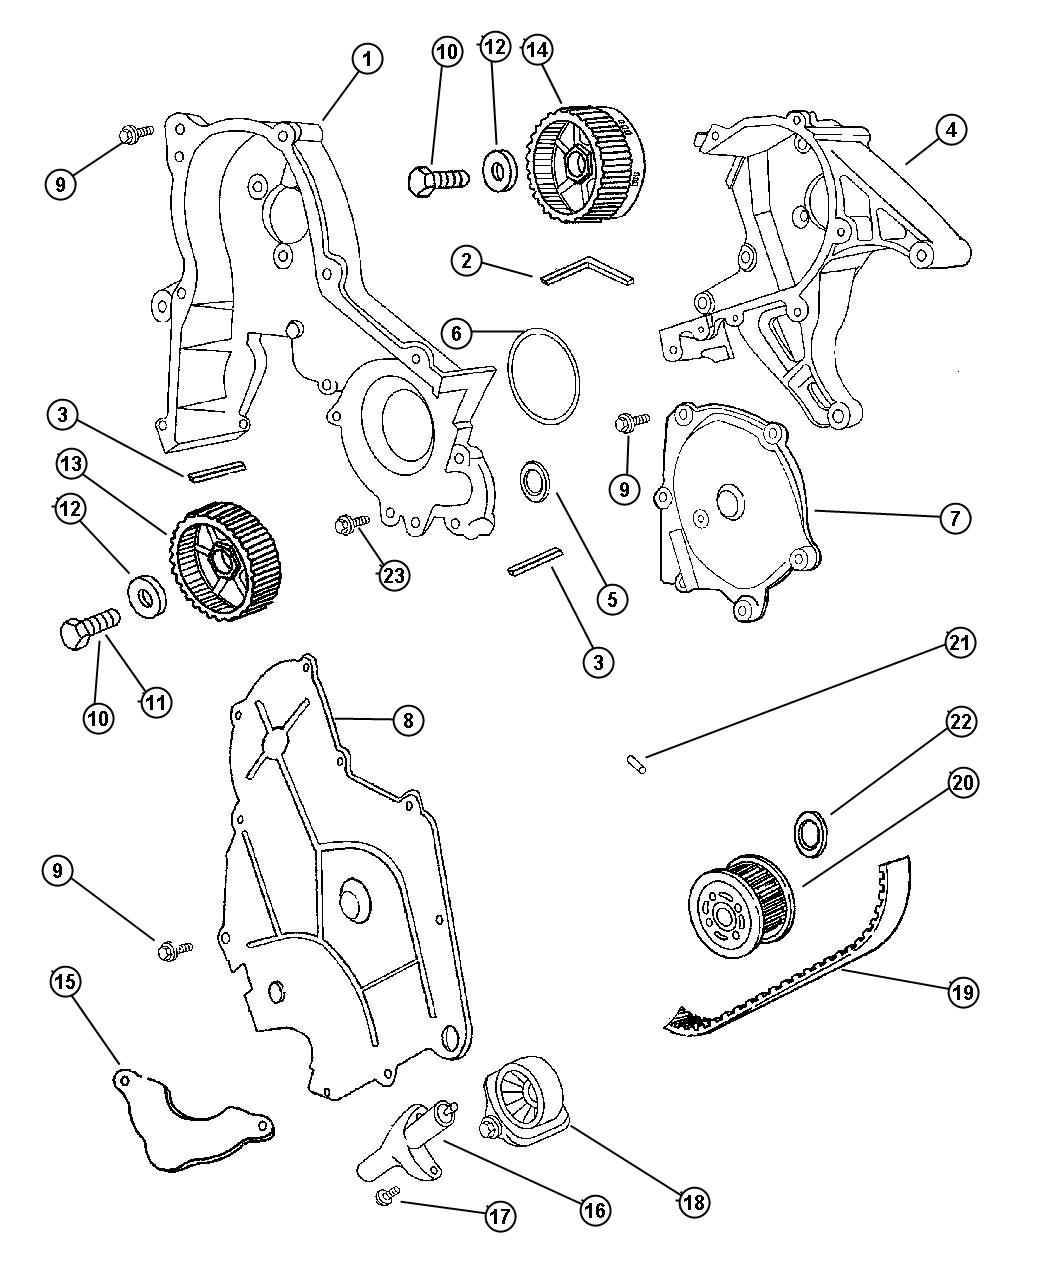 2000 dodge intrepid parts diagram gibson single pickup wiring engine belts free image